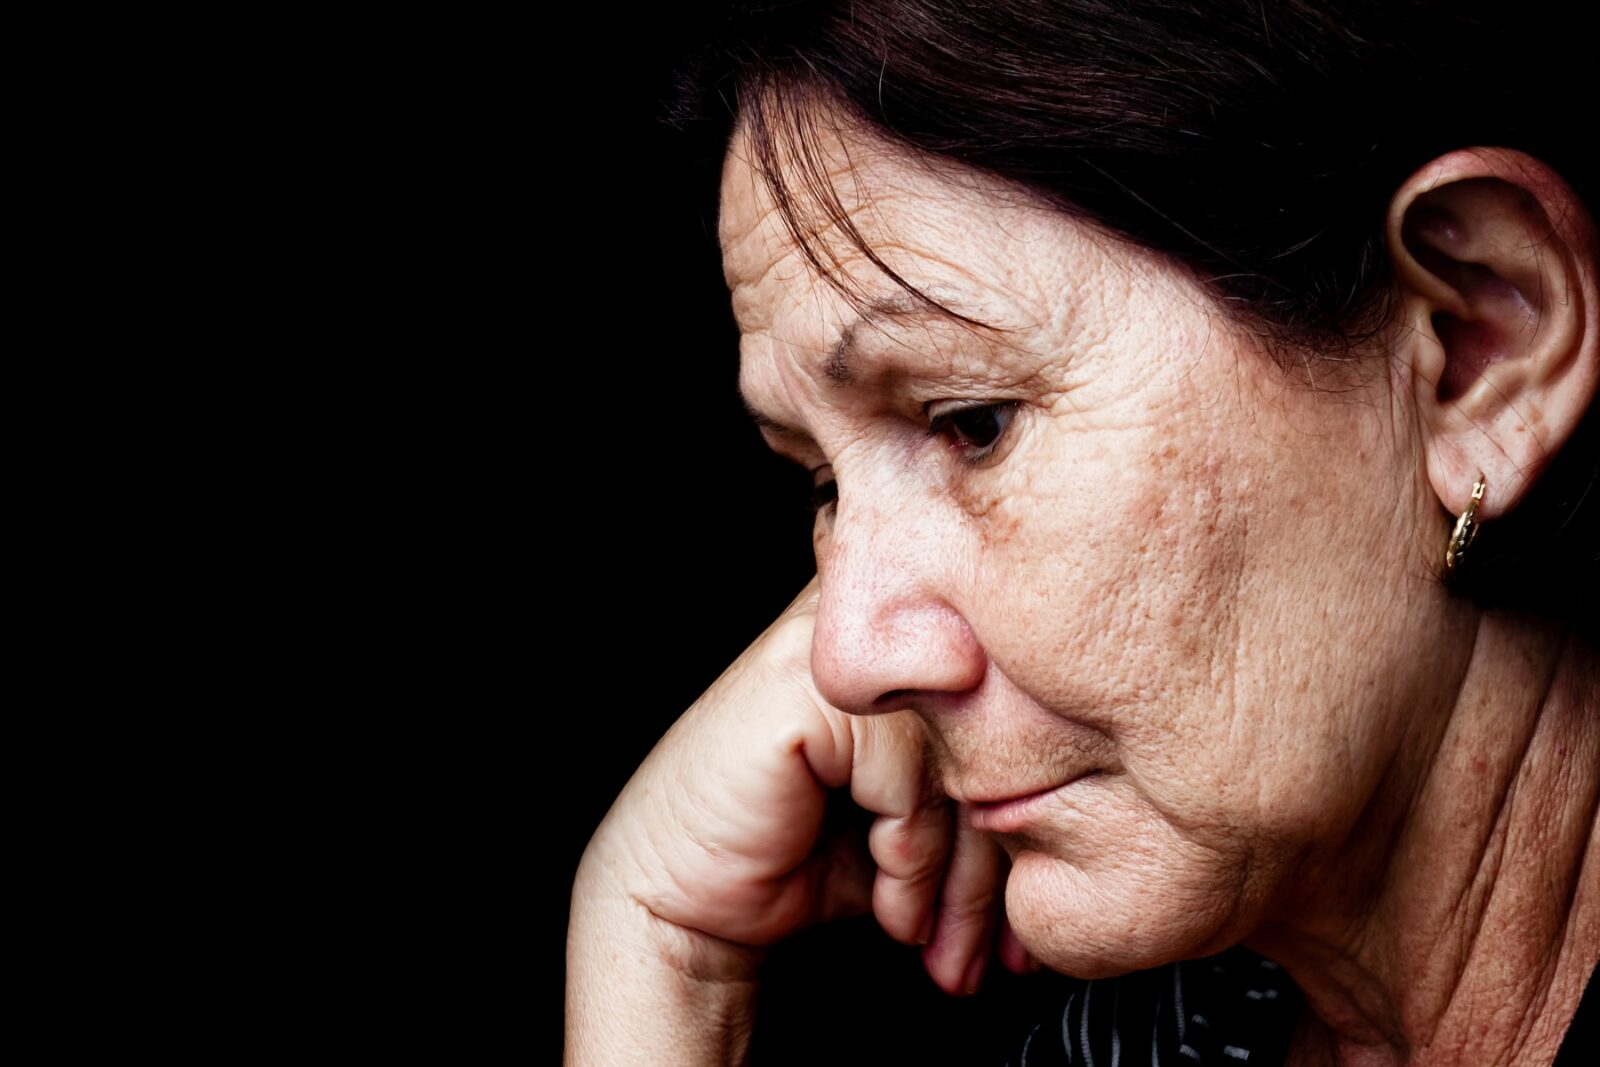 Grieving woman looking sad